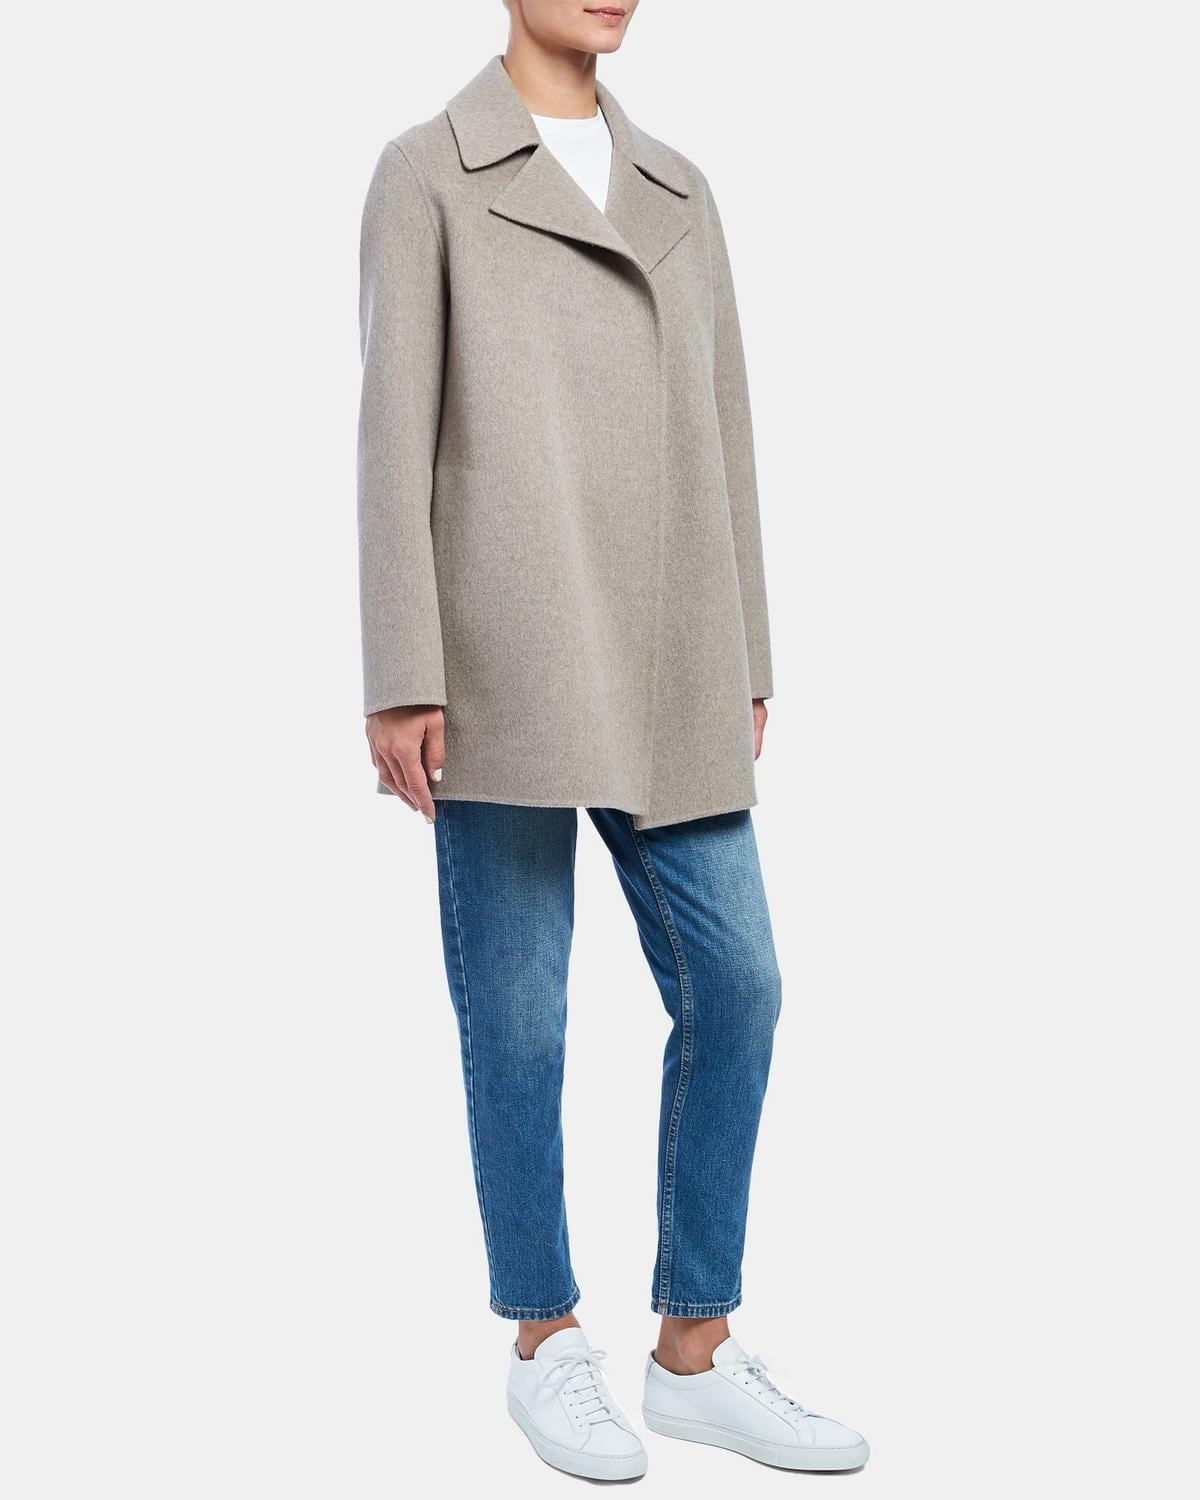 Theory outlet: Up to 80% off + extra 10% off on select styles